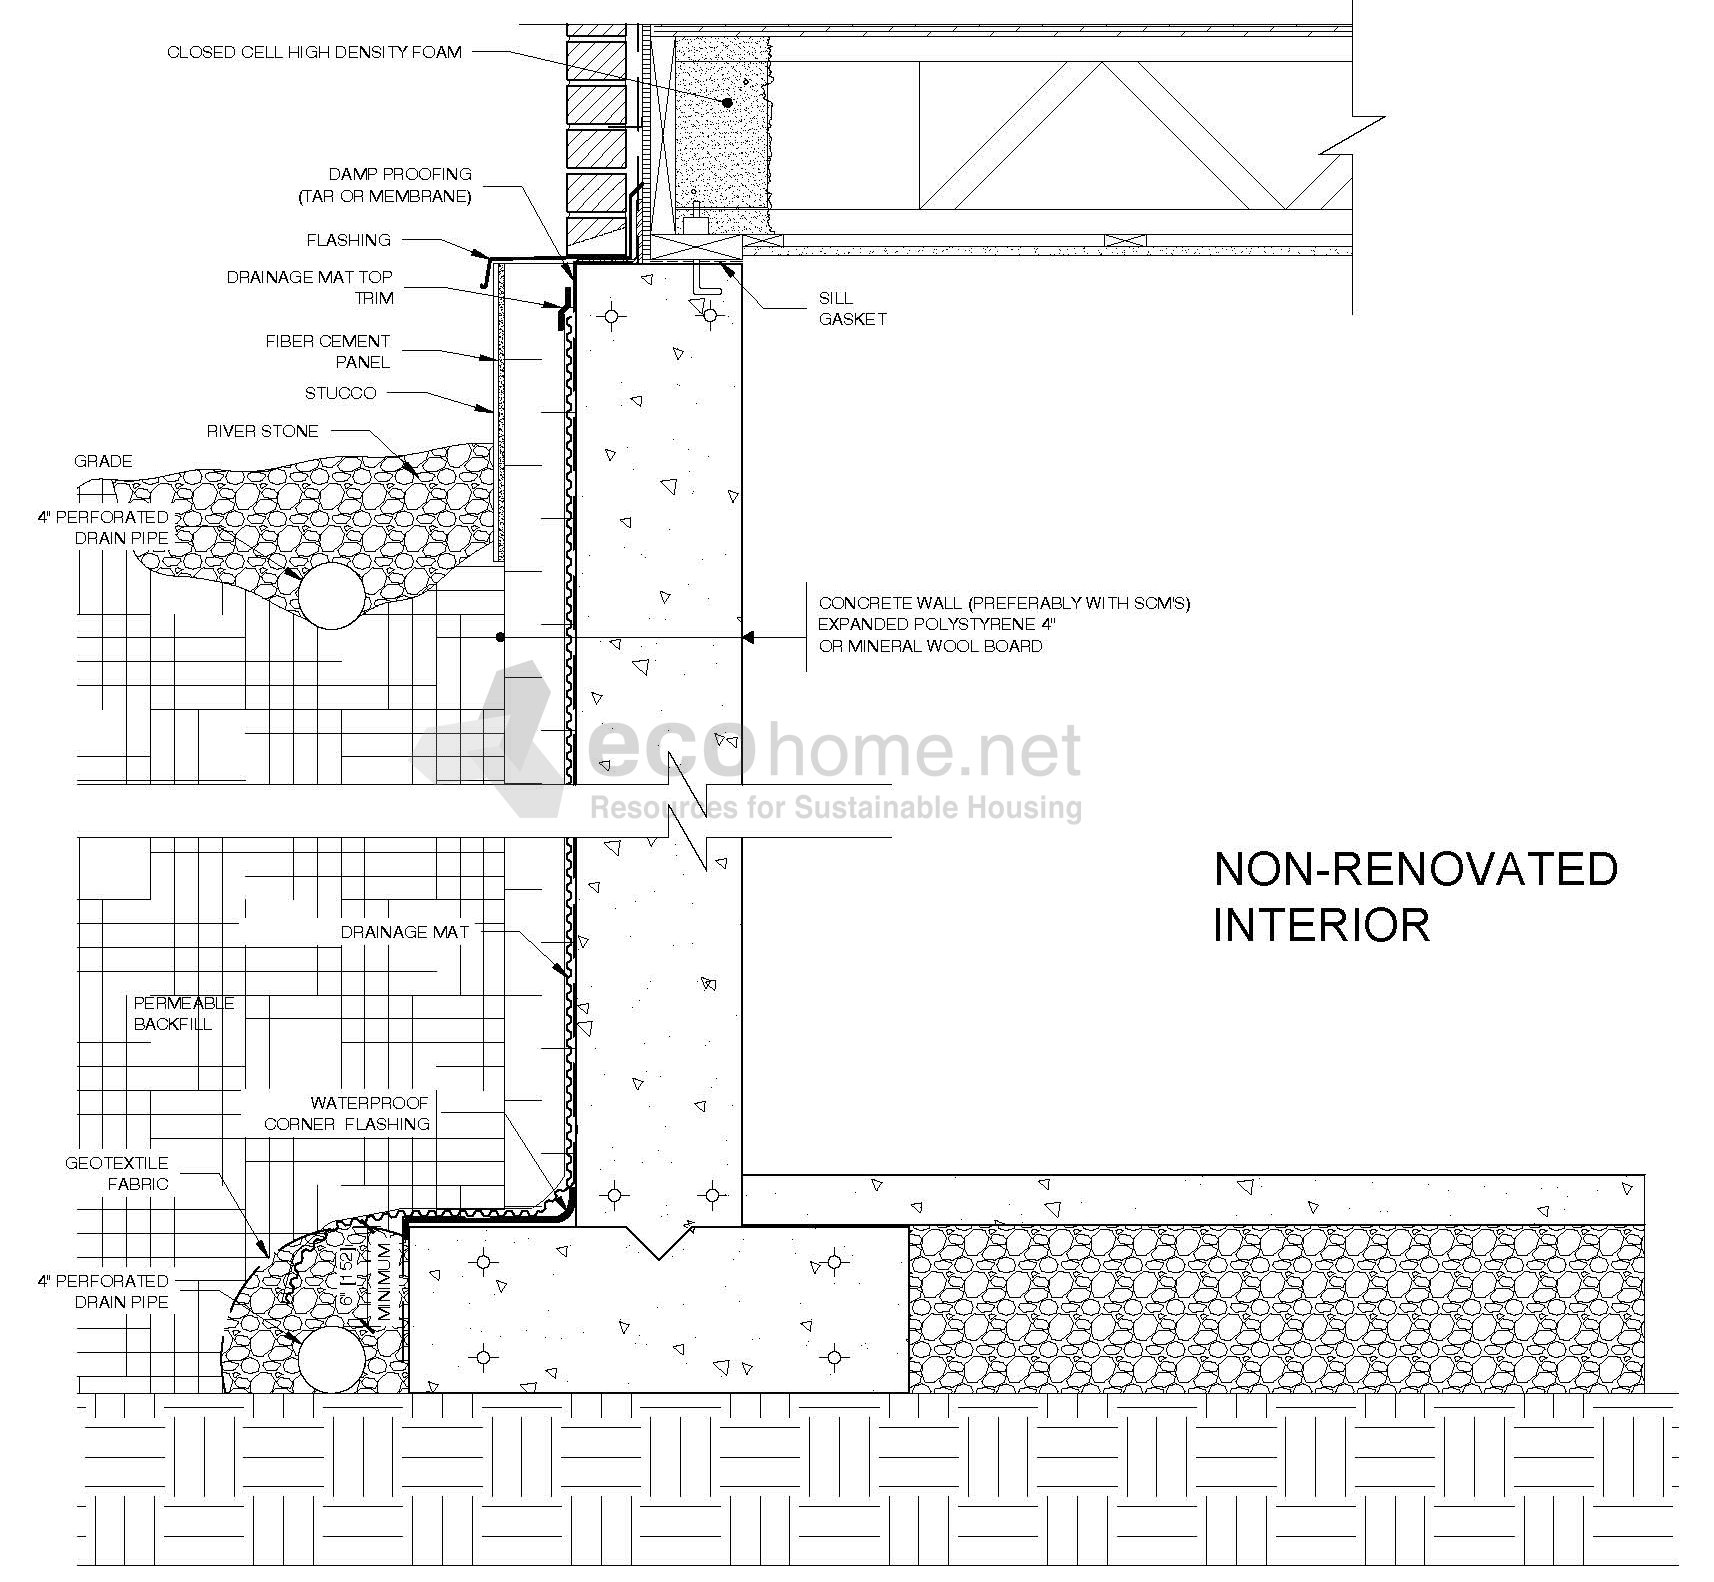 Plumbing Diagram for House, Non Renovated Interior With